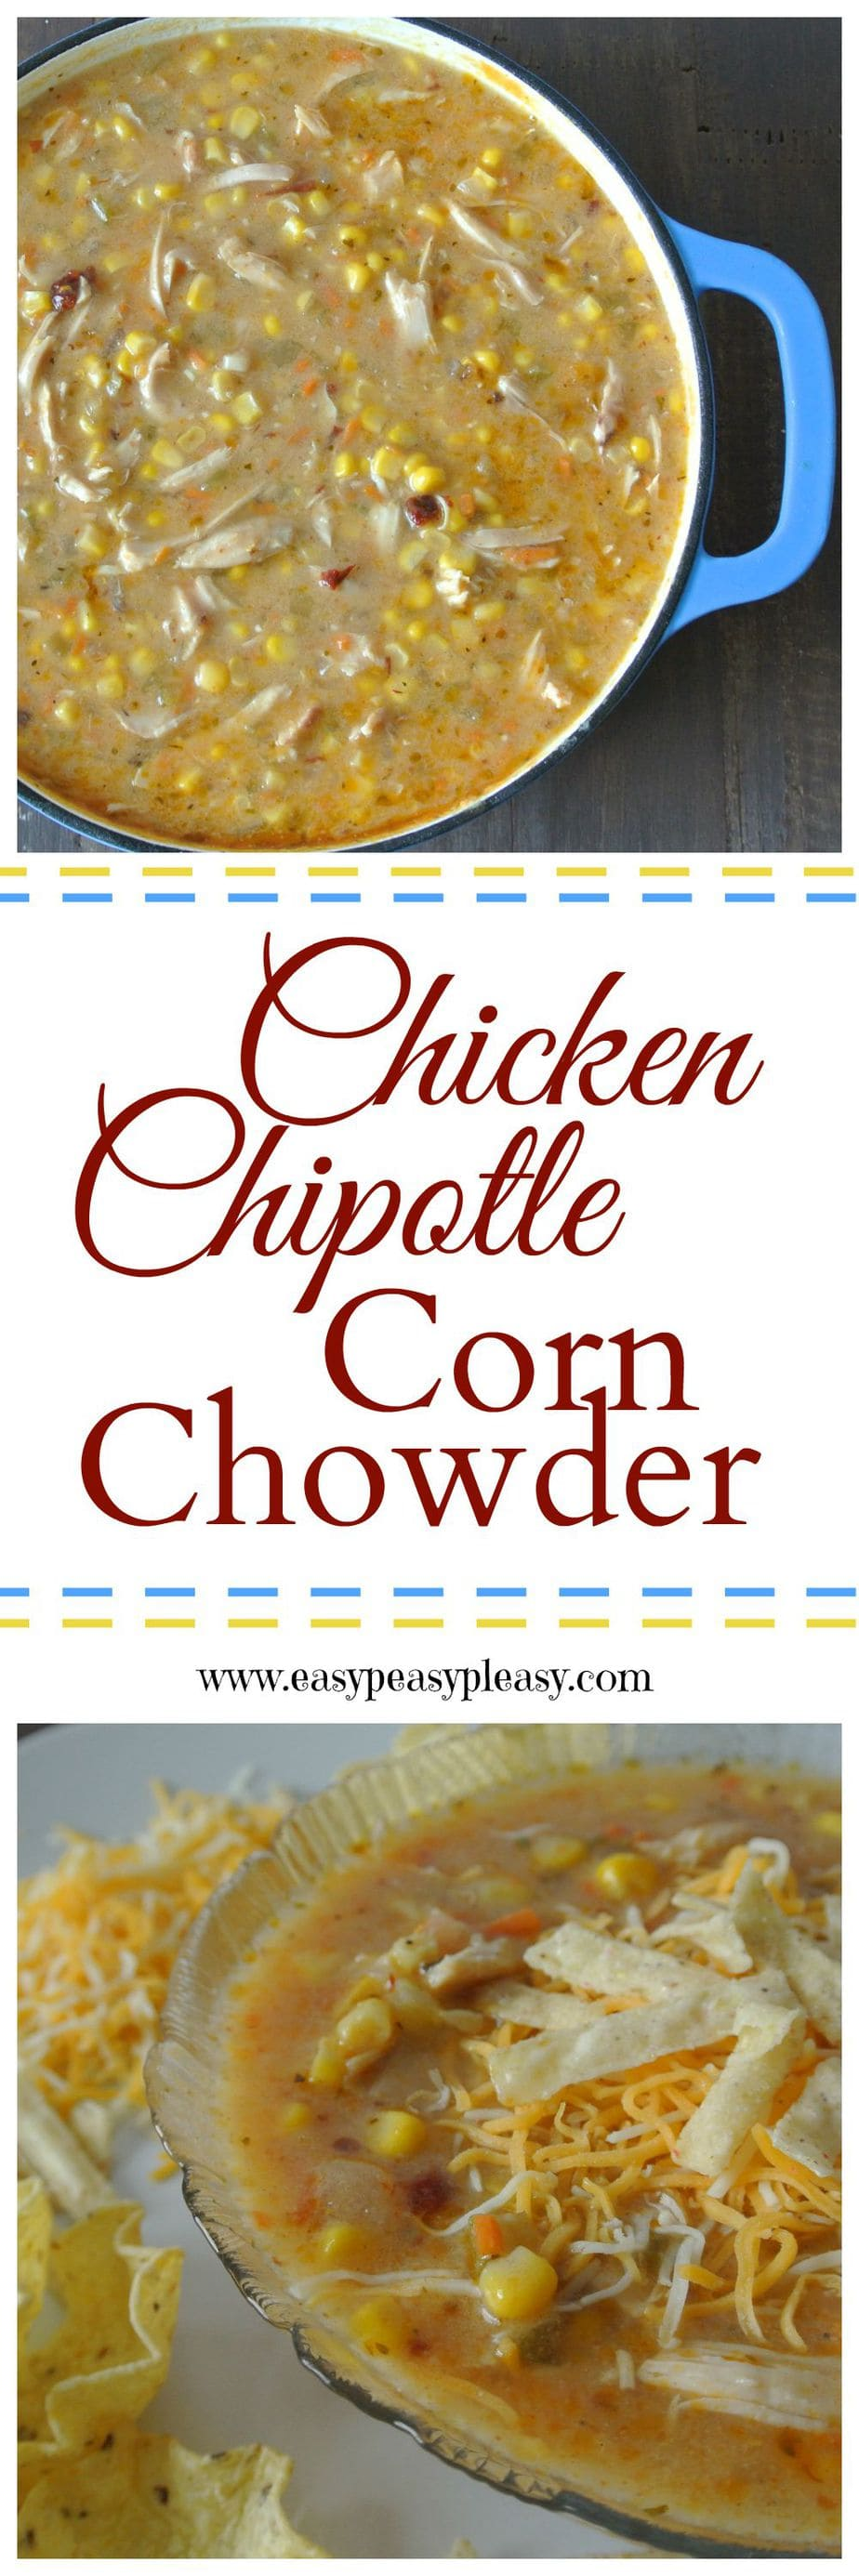 Chicken Chipotle Corn Chowder is the perfect fall and winter soup.